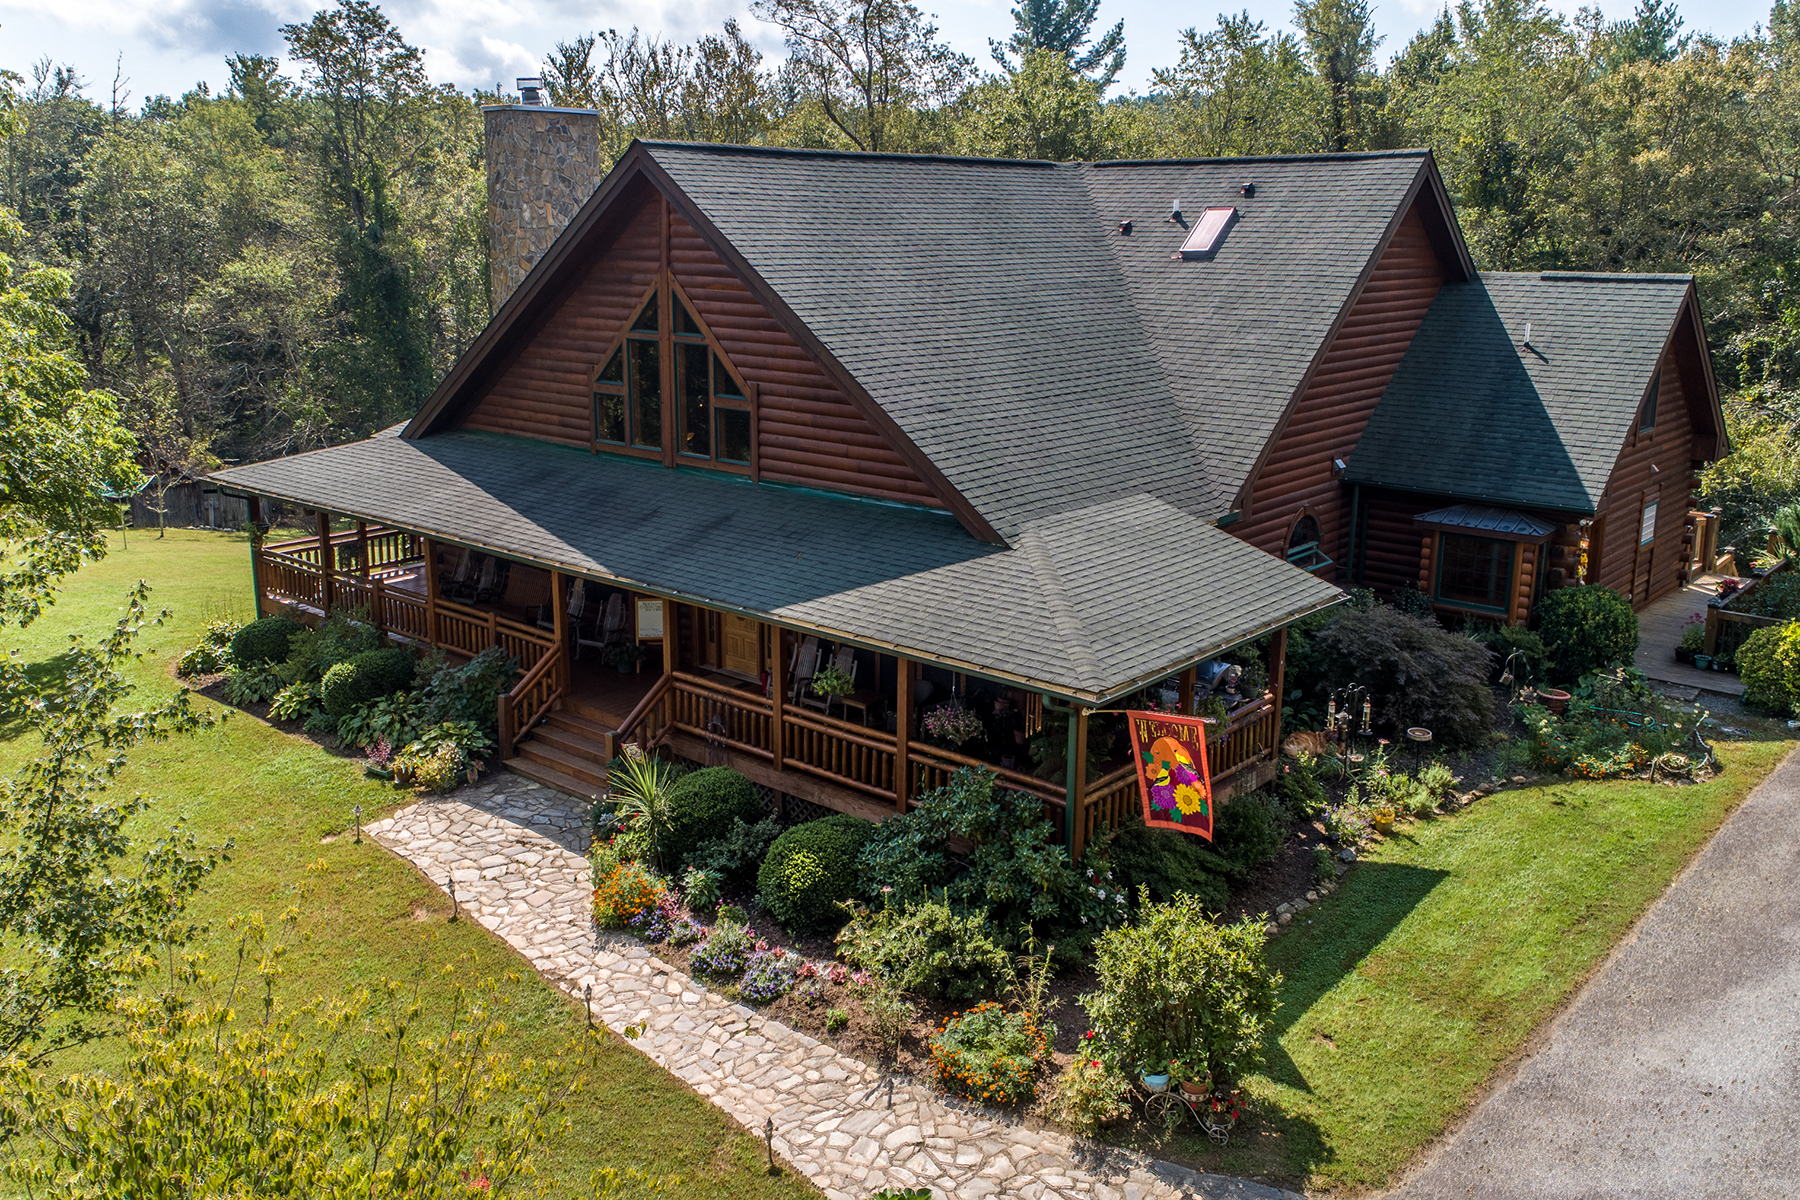 Single Family Home for Active at GLADE VALLEY 330 Shaw Lane Glade Valley, North Carolina 28627 United States